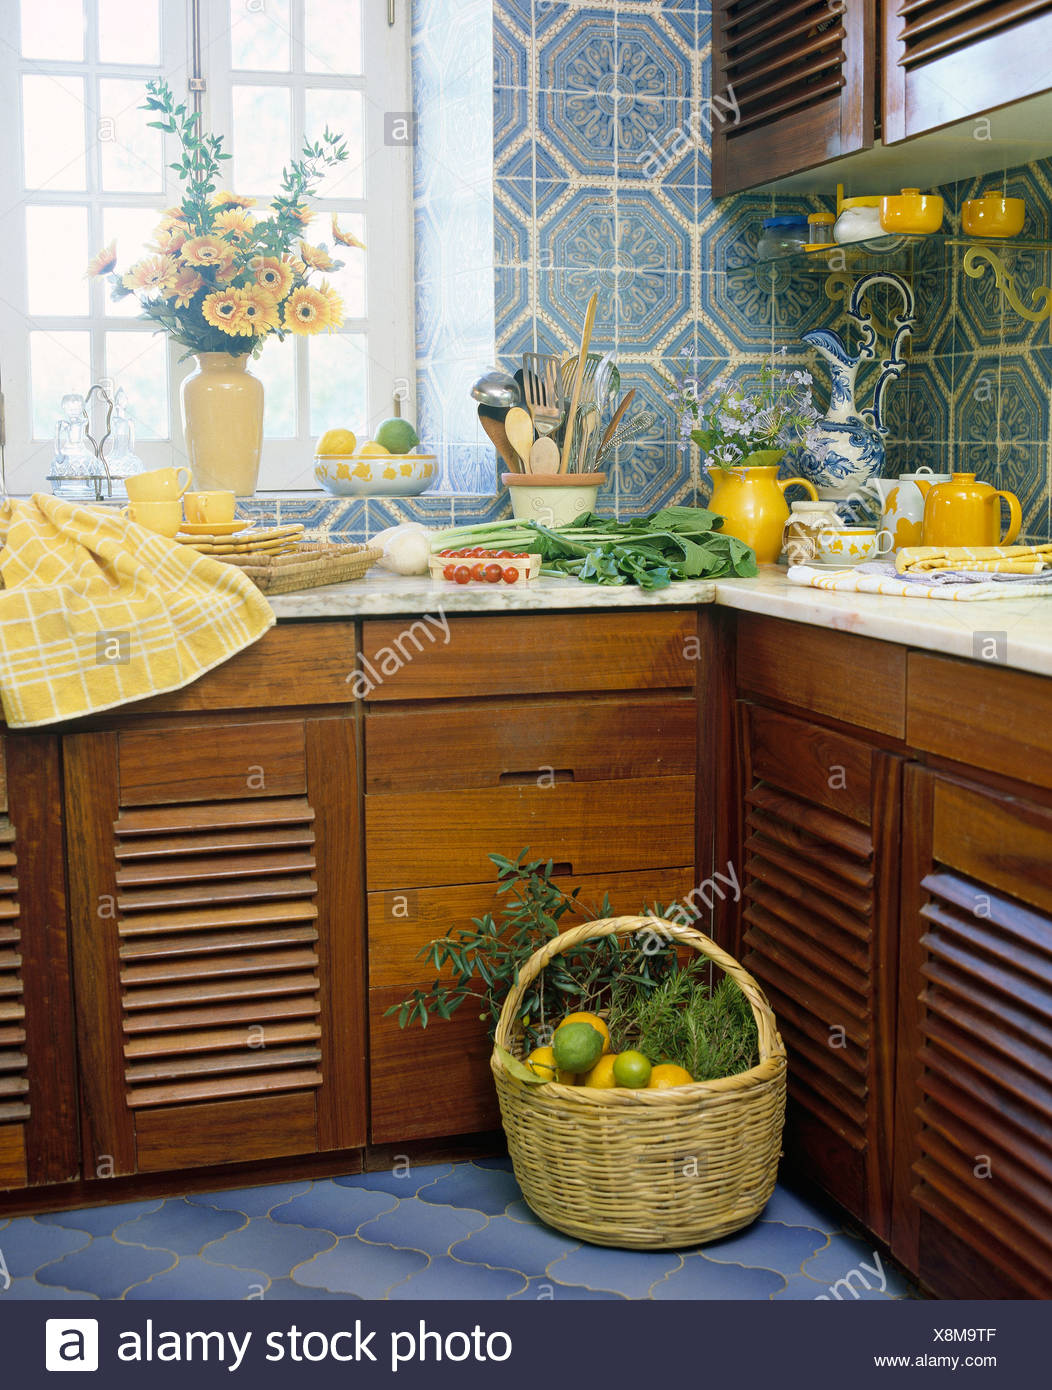 Country Kitchens Stockfotos & Country Kitchens Bilder - Seite 11 - Alamy